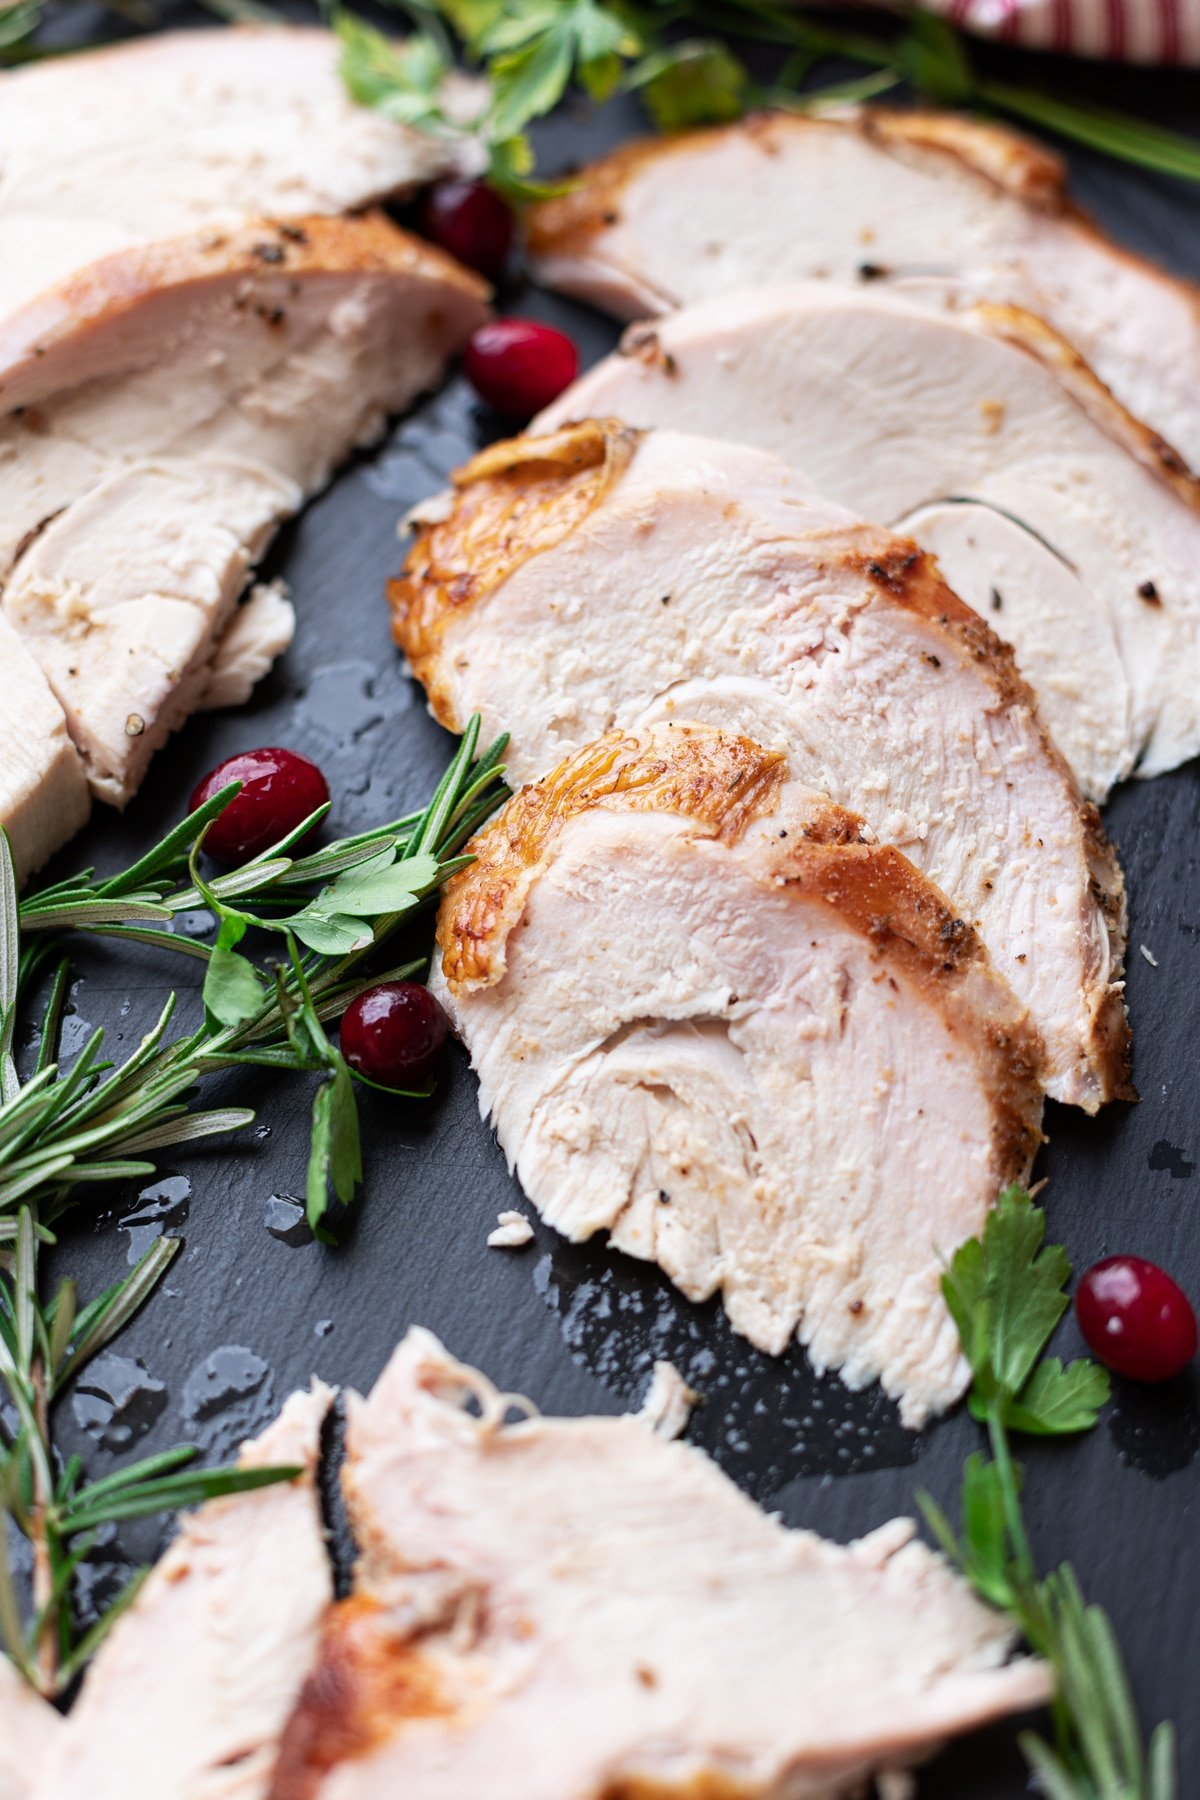 Sliced turkey breast on a plate, cranberries and rosemary on table.